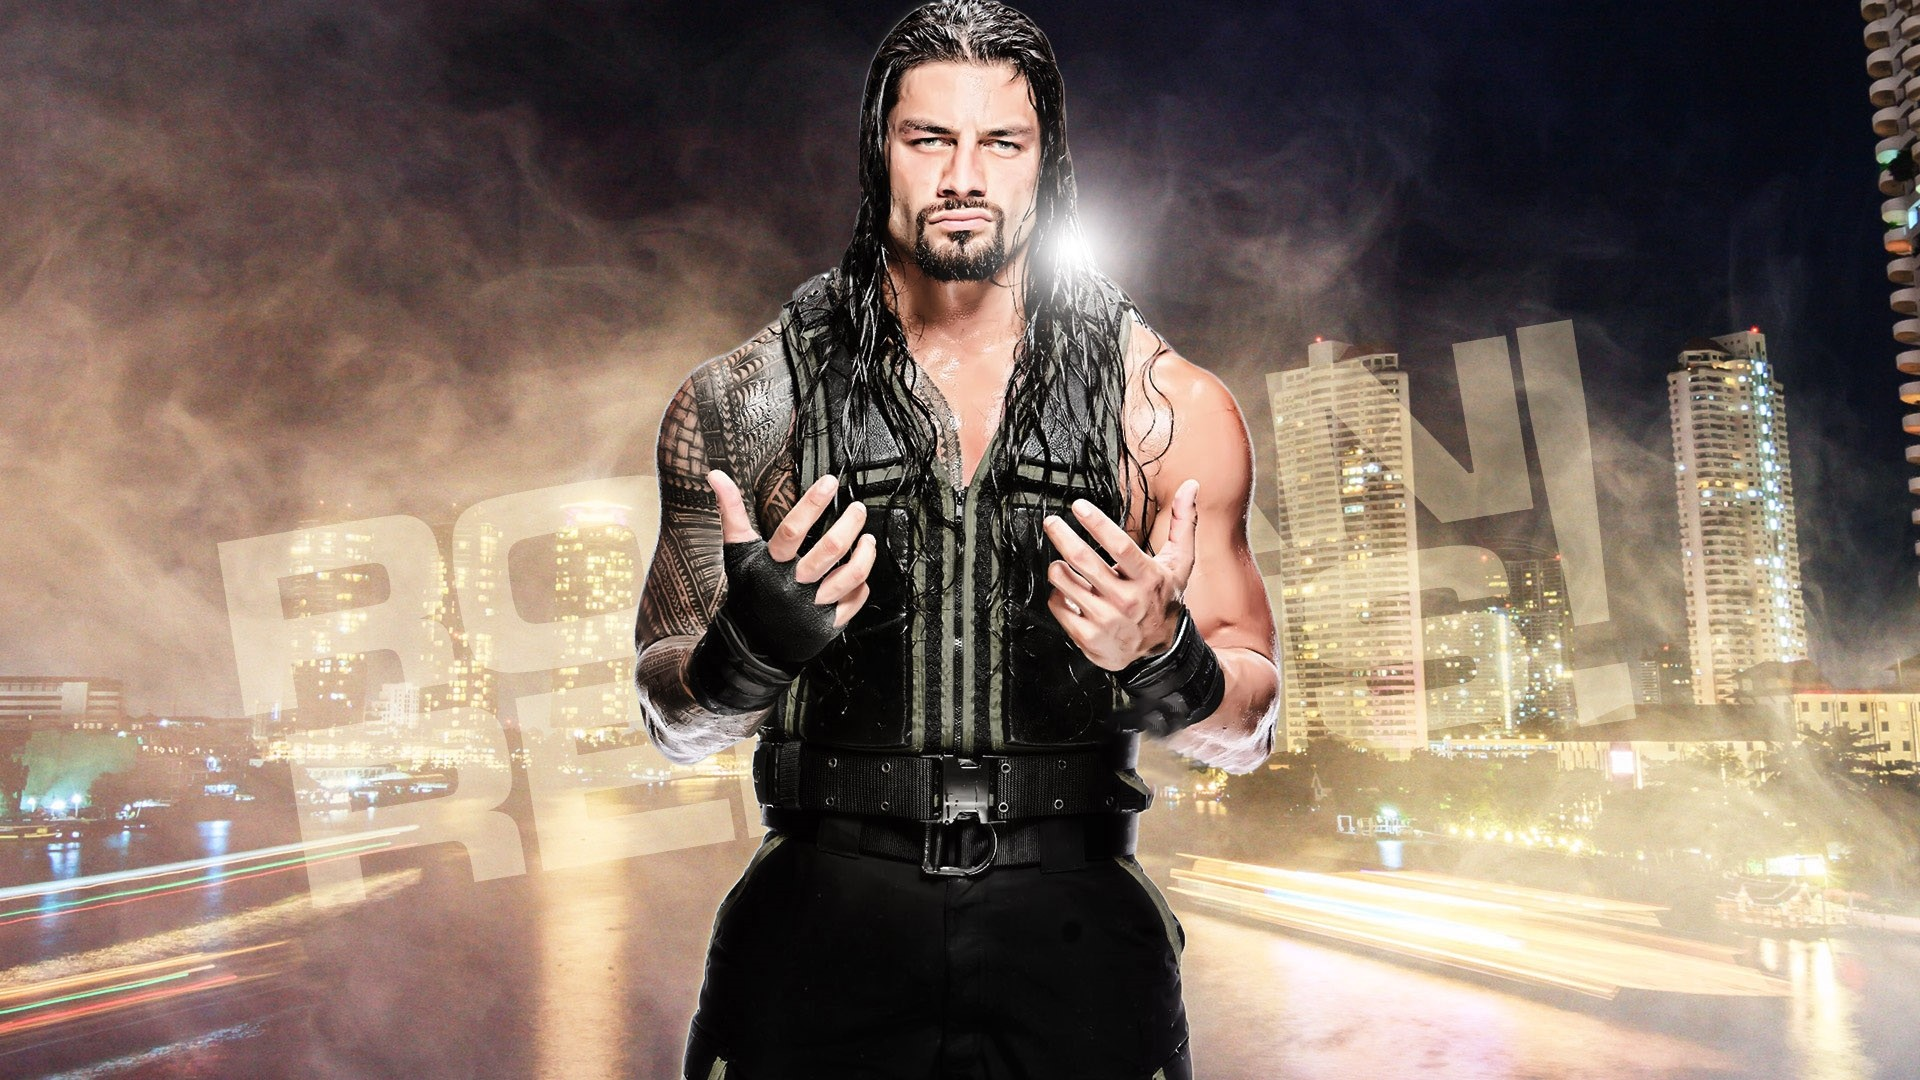 Roman Reigns Wallpaper and Background